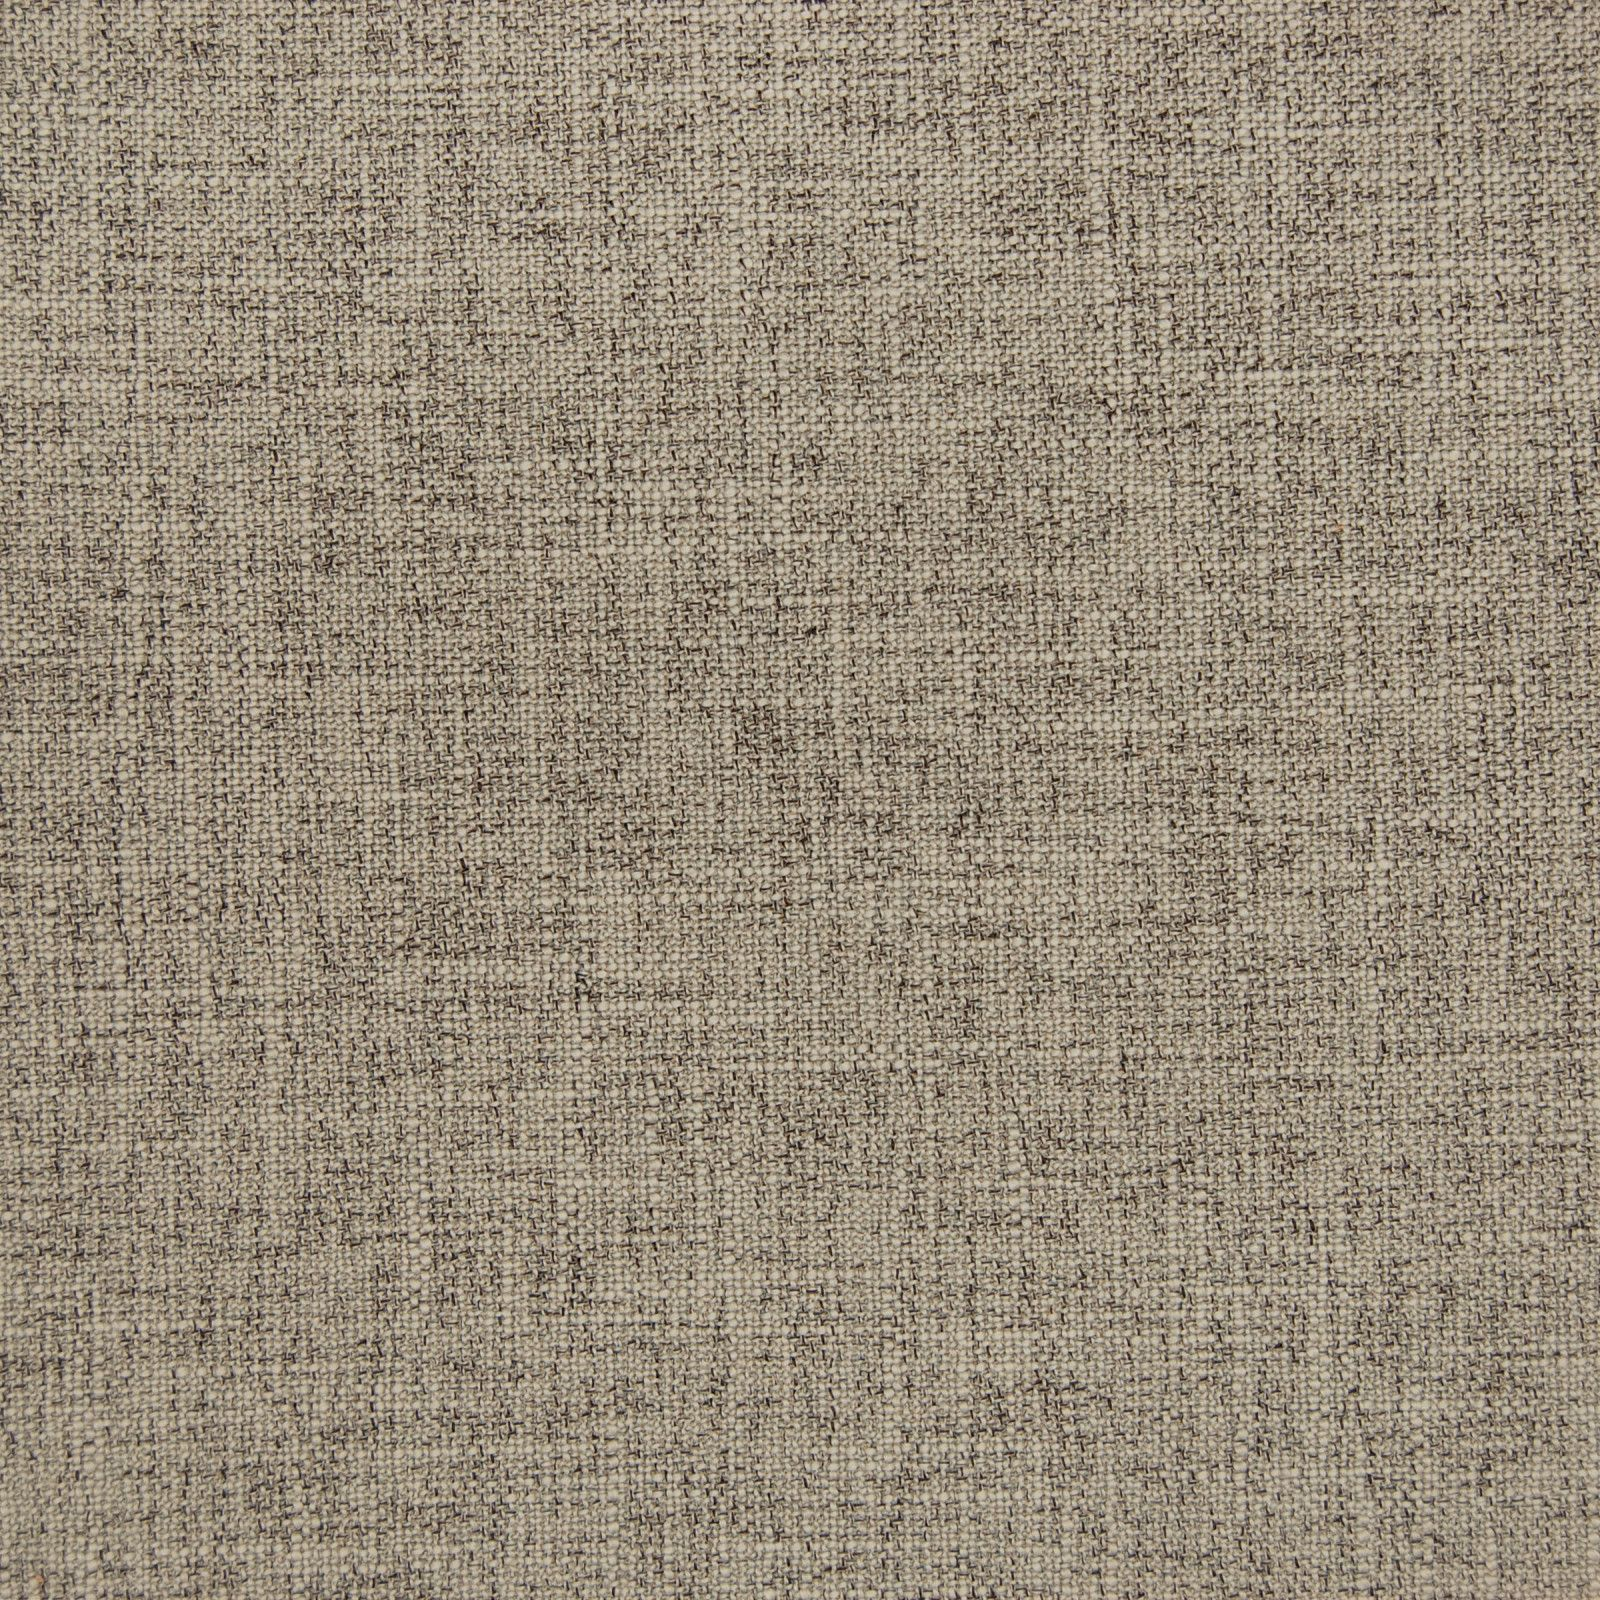 Neutral Color Solid Pattern Woven And Texture Crypton Home Performance Type Upholstery Fabric Called G8562 Hessian By Kovi Fabrics